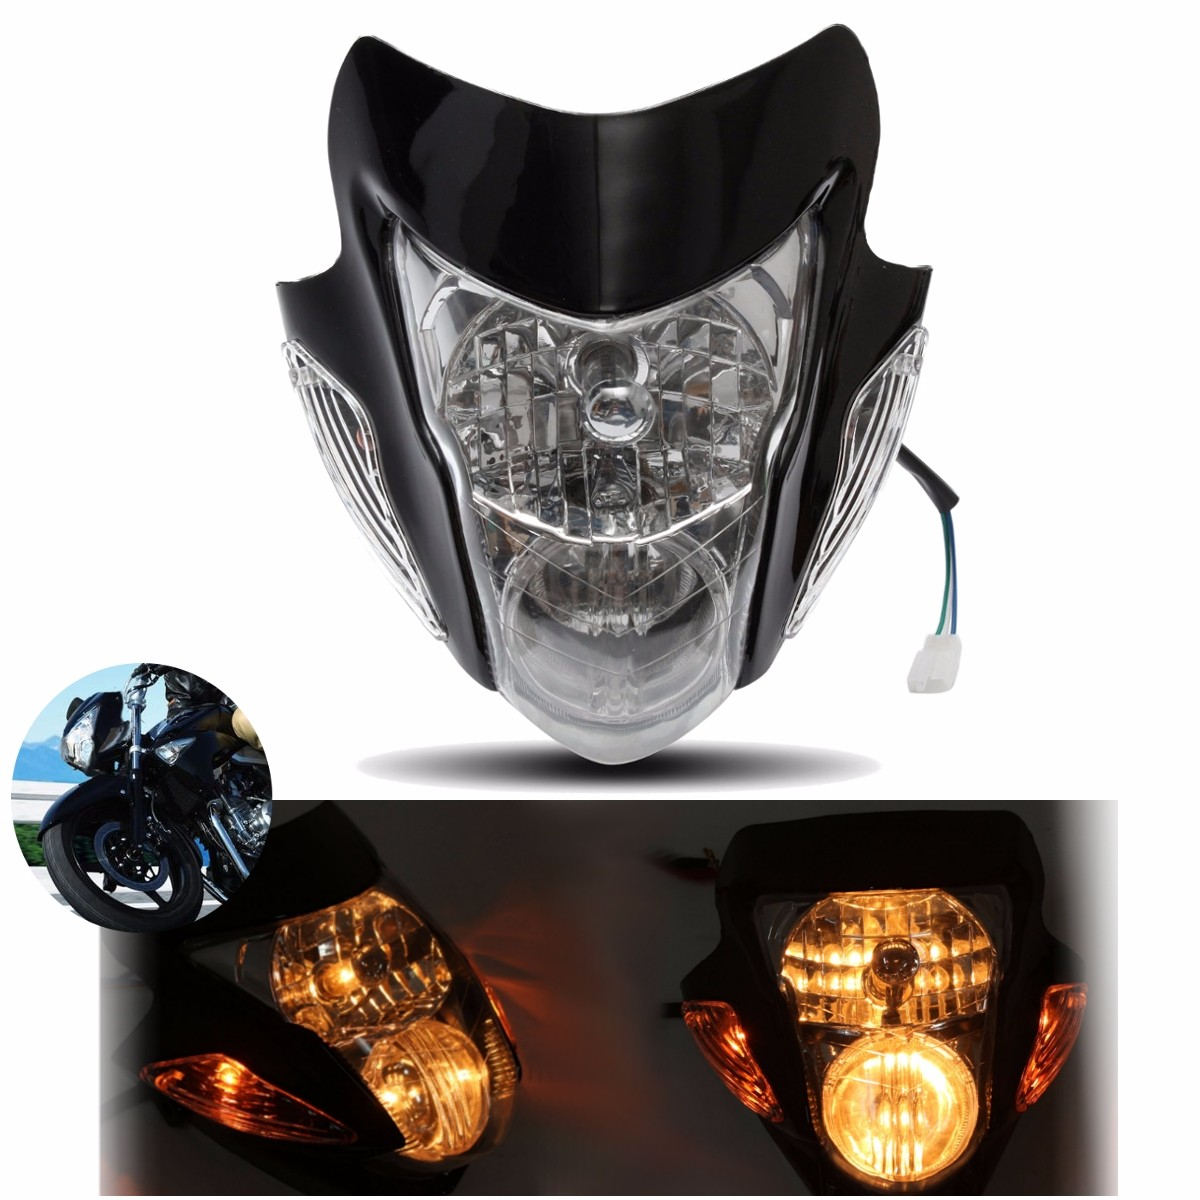 Universal Motorcycle Headlight Hi-Low Beam Head Lamp  For Honda/Yamaha/Suzuki/KTM